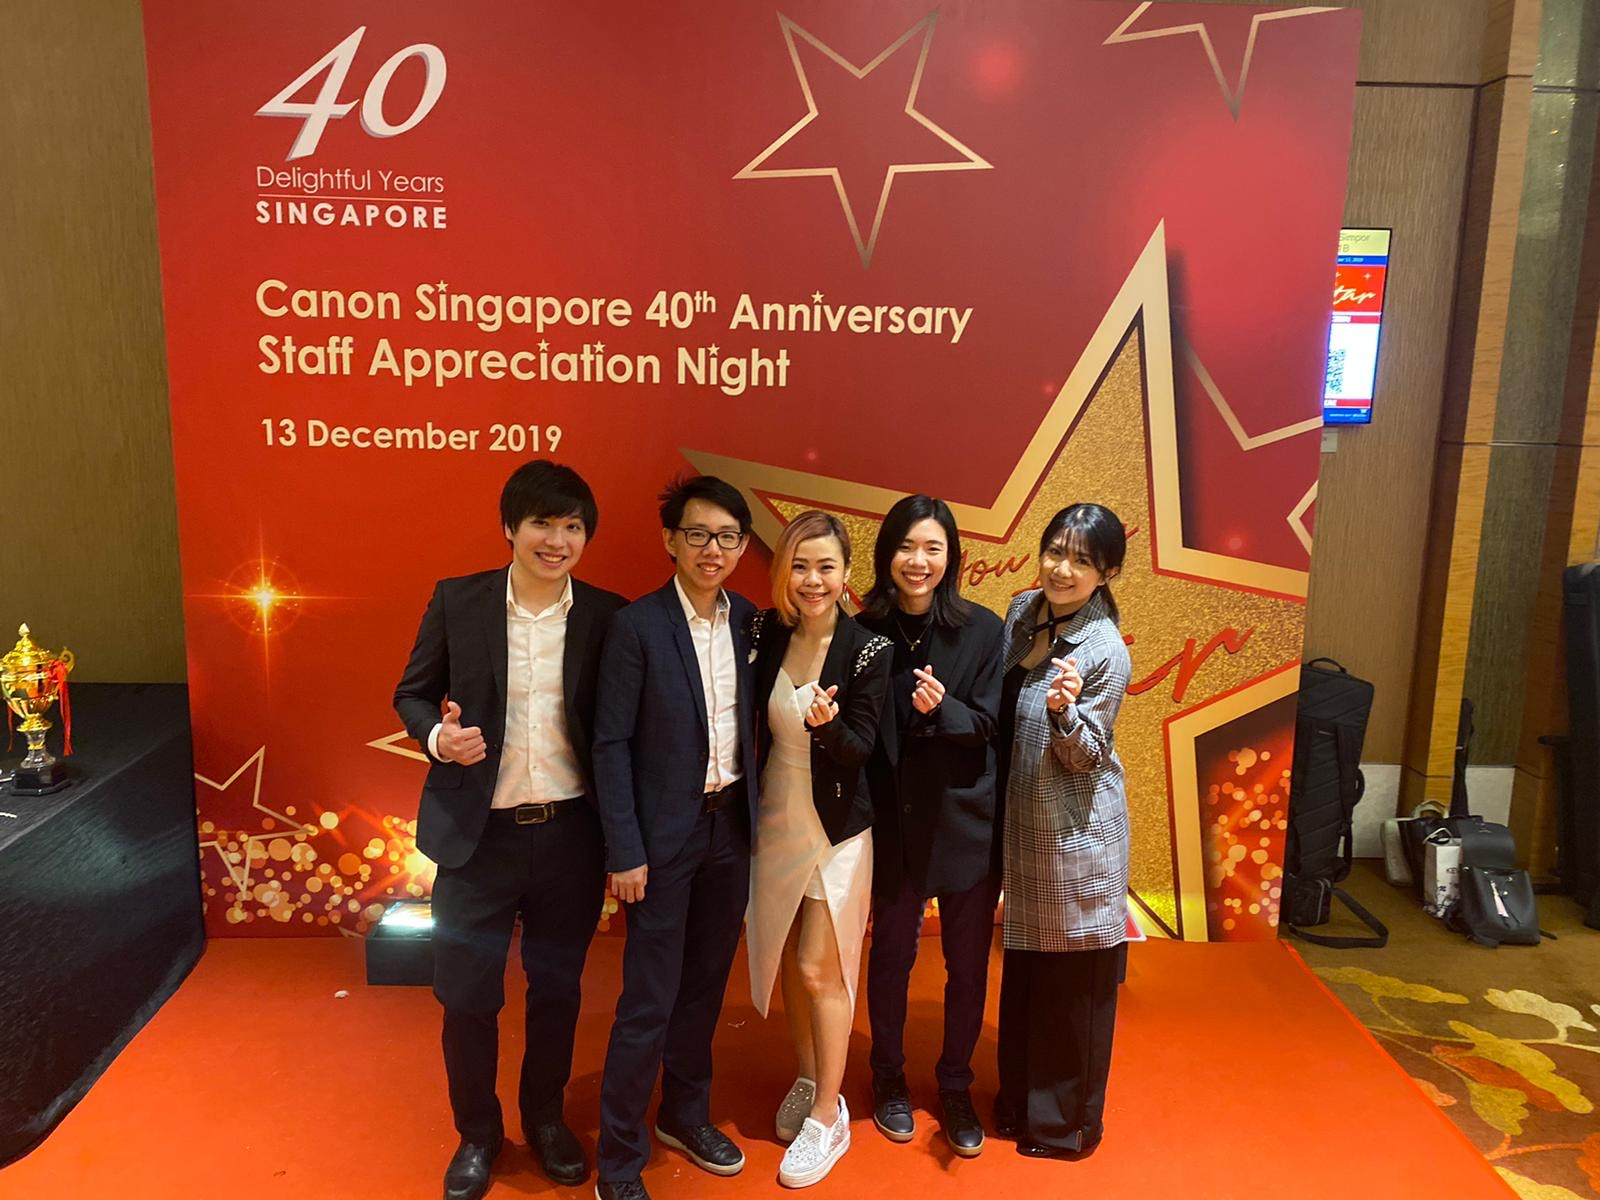 Canon Singapore 40th Anniversary